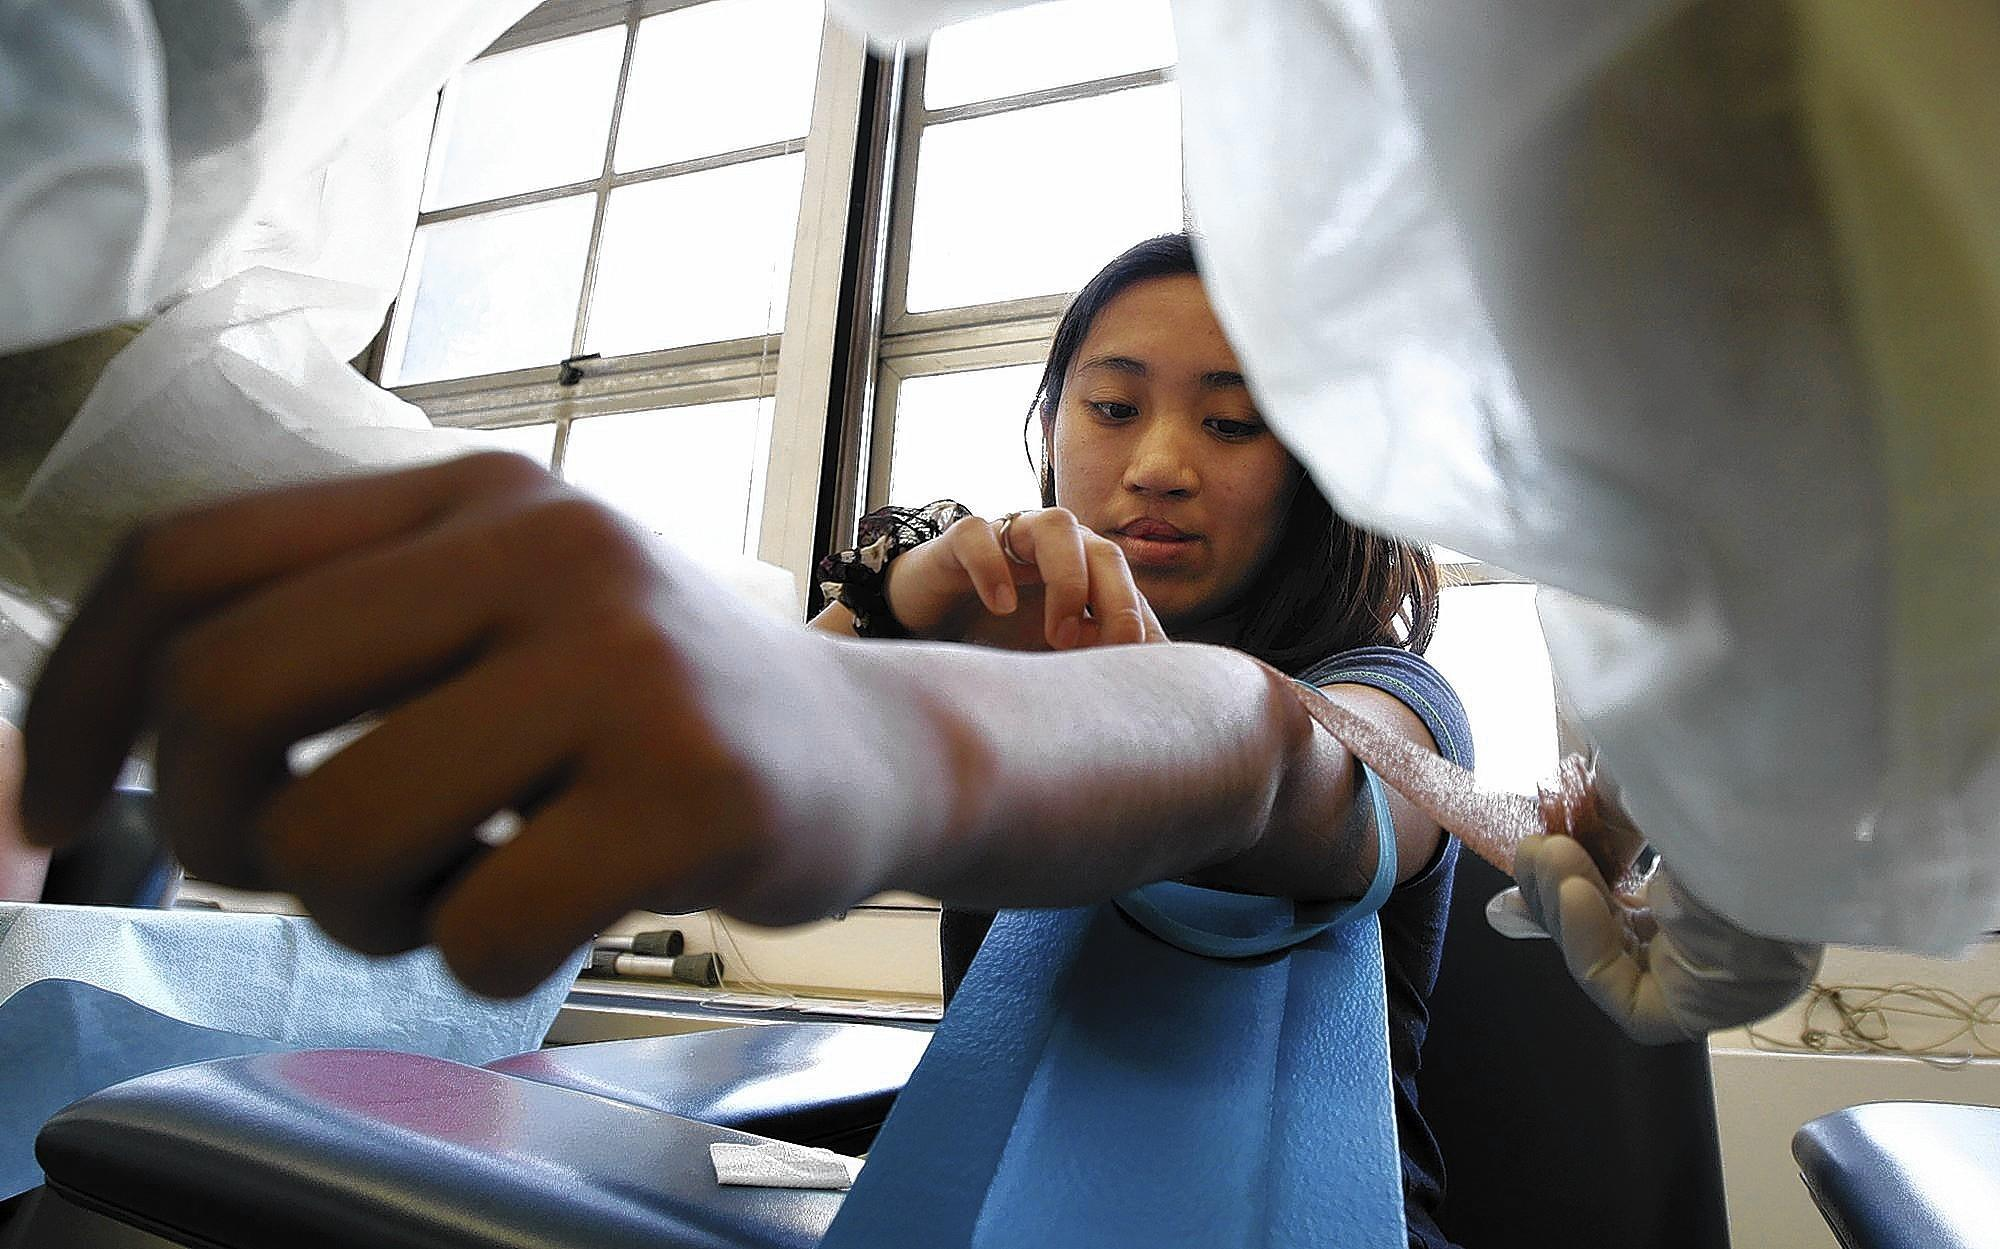 Student Lourdes Valderama, 20, center, gets bandaged up after having her blood drawn in a phlebotomy course at Long Beach City College, which is involved in a pilot program offering extra sessions of high-demand courses at a higher price than regular classes.